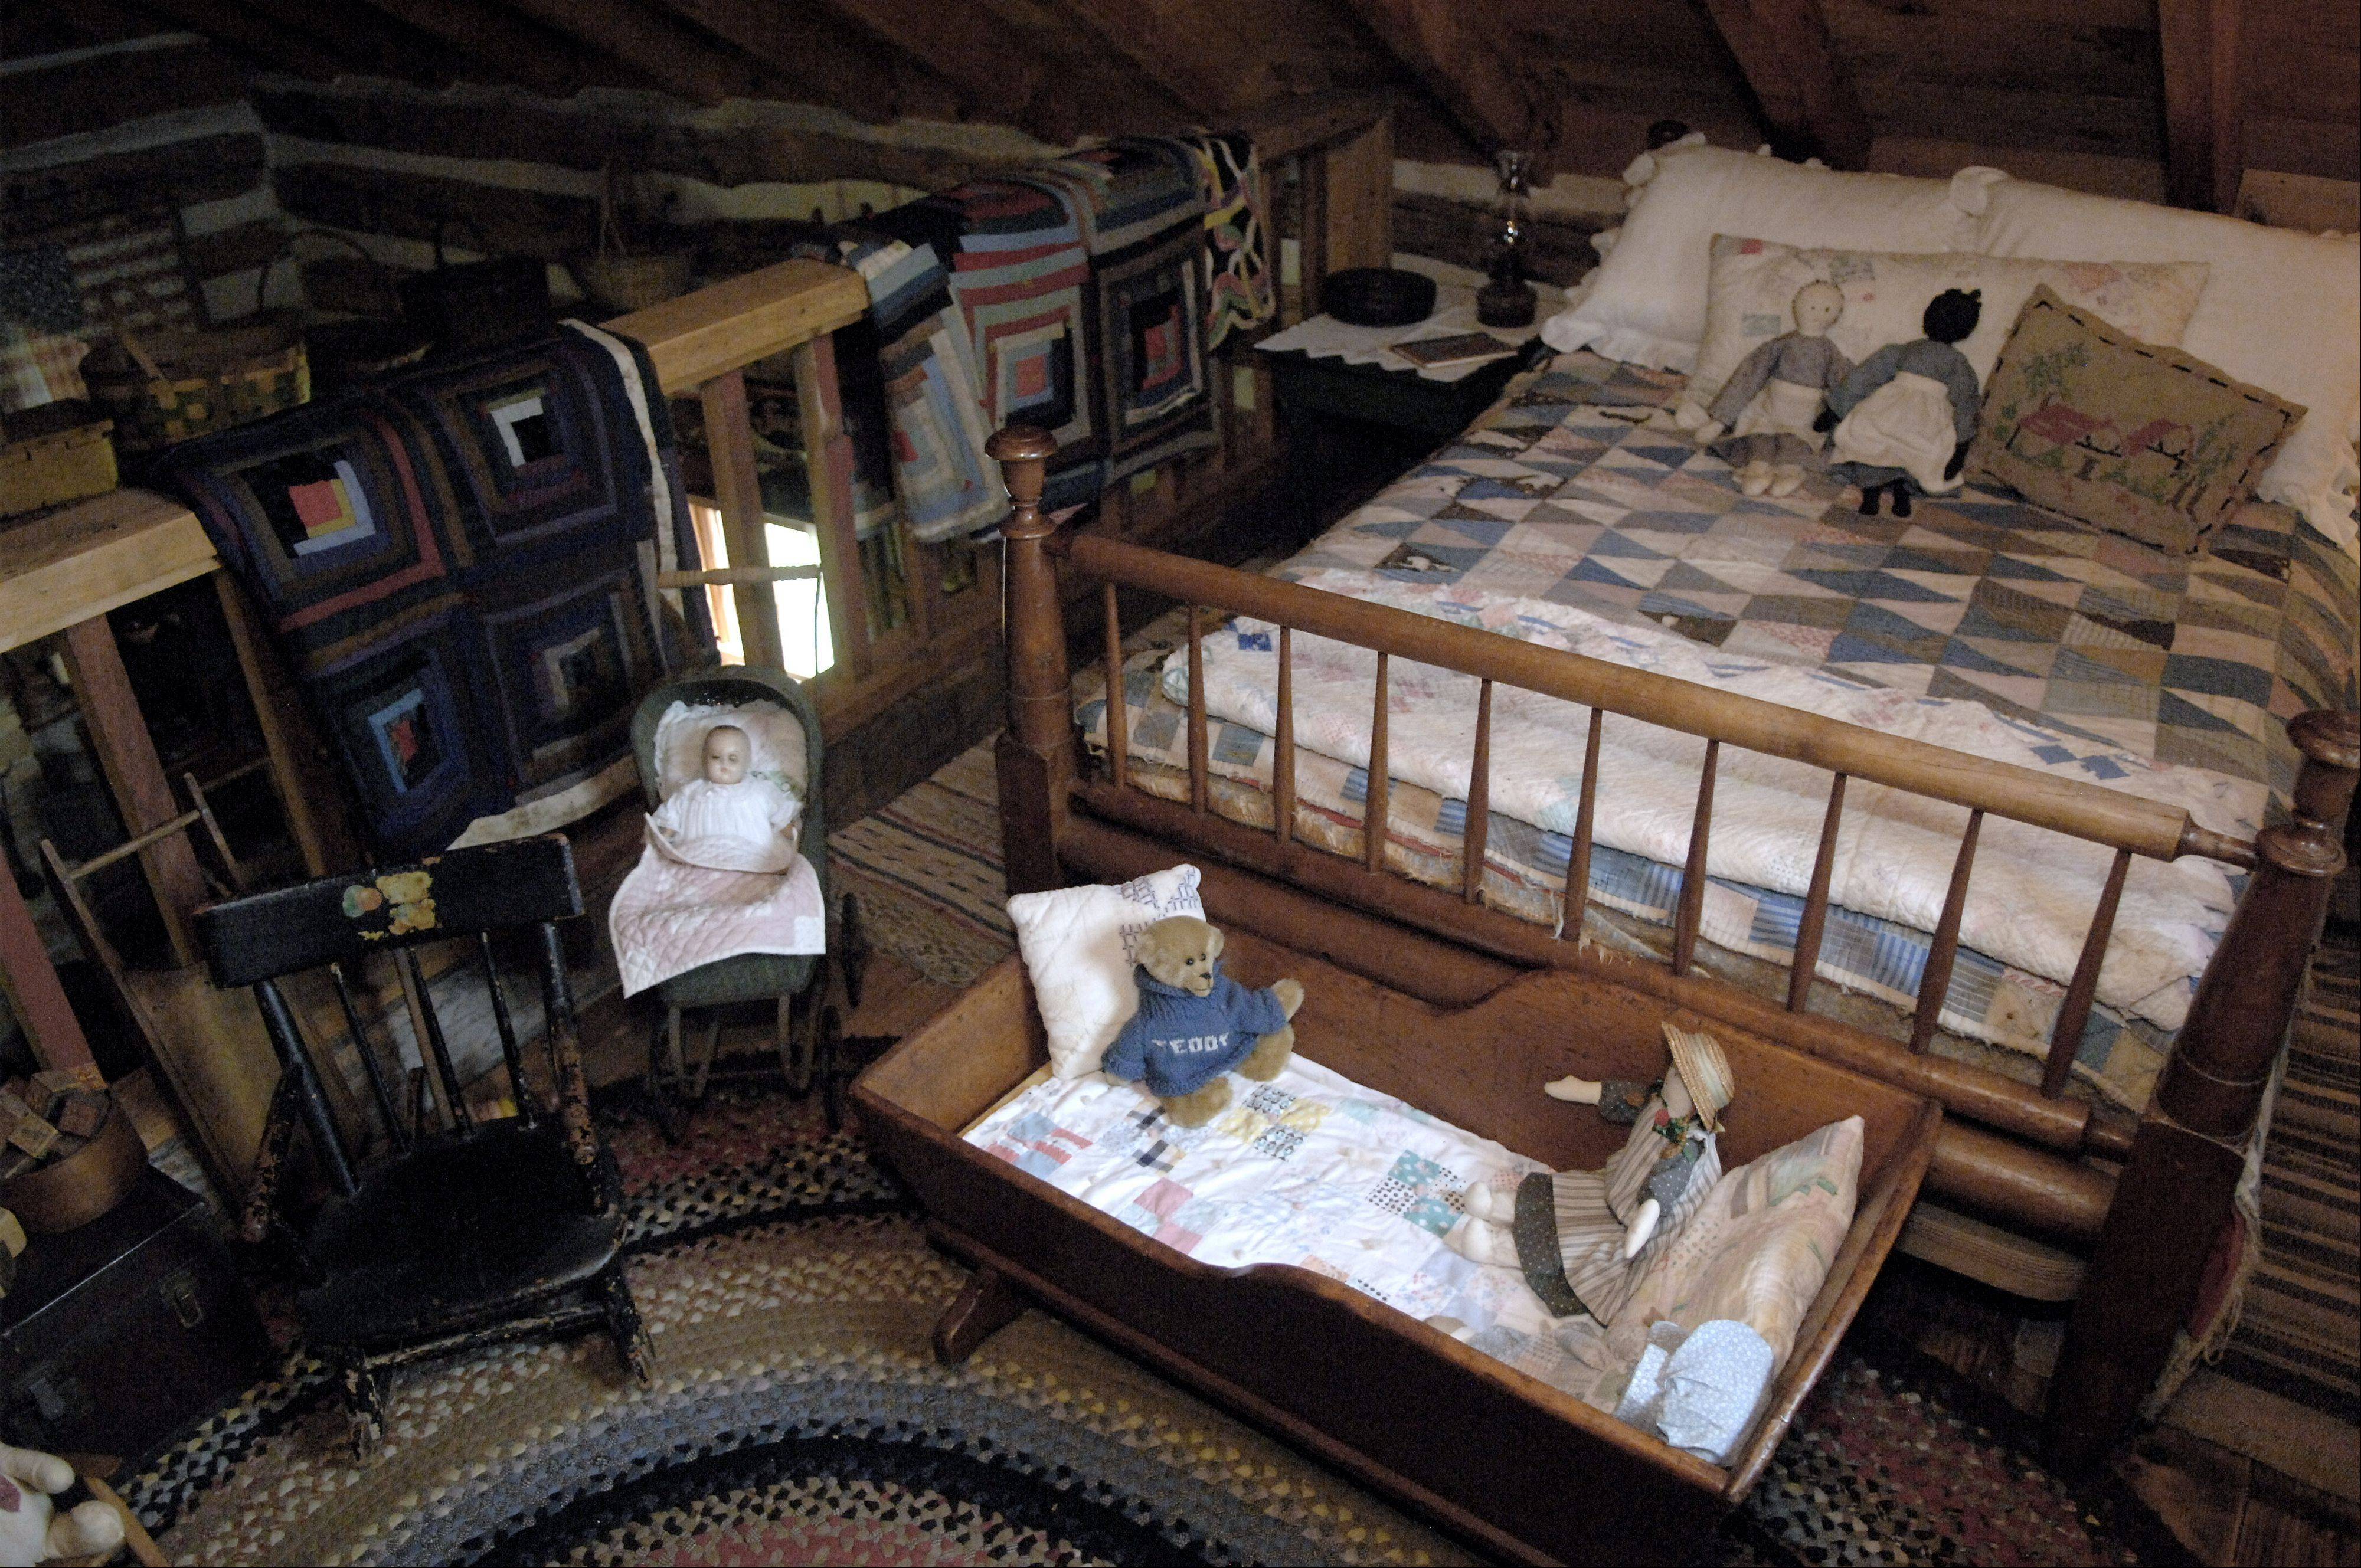 The loft shows the quilts, dolls and beds that Mary Lou White collected for the 1840s log house. Some of the quilts are family heirlooms.